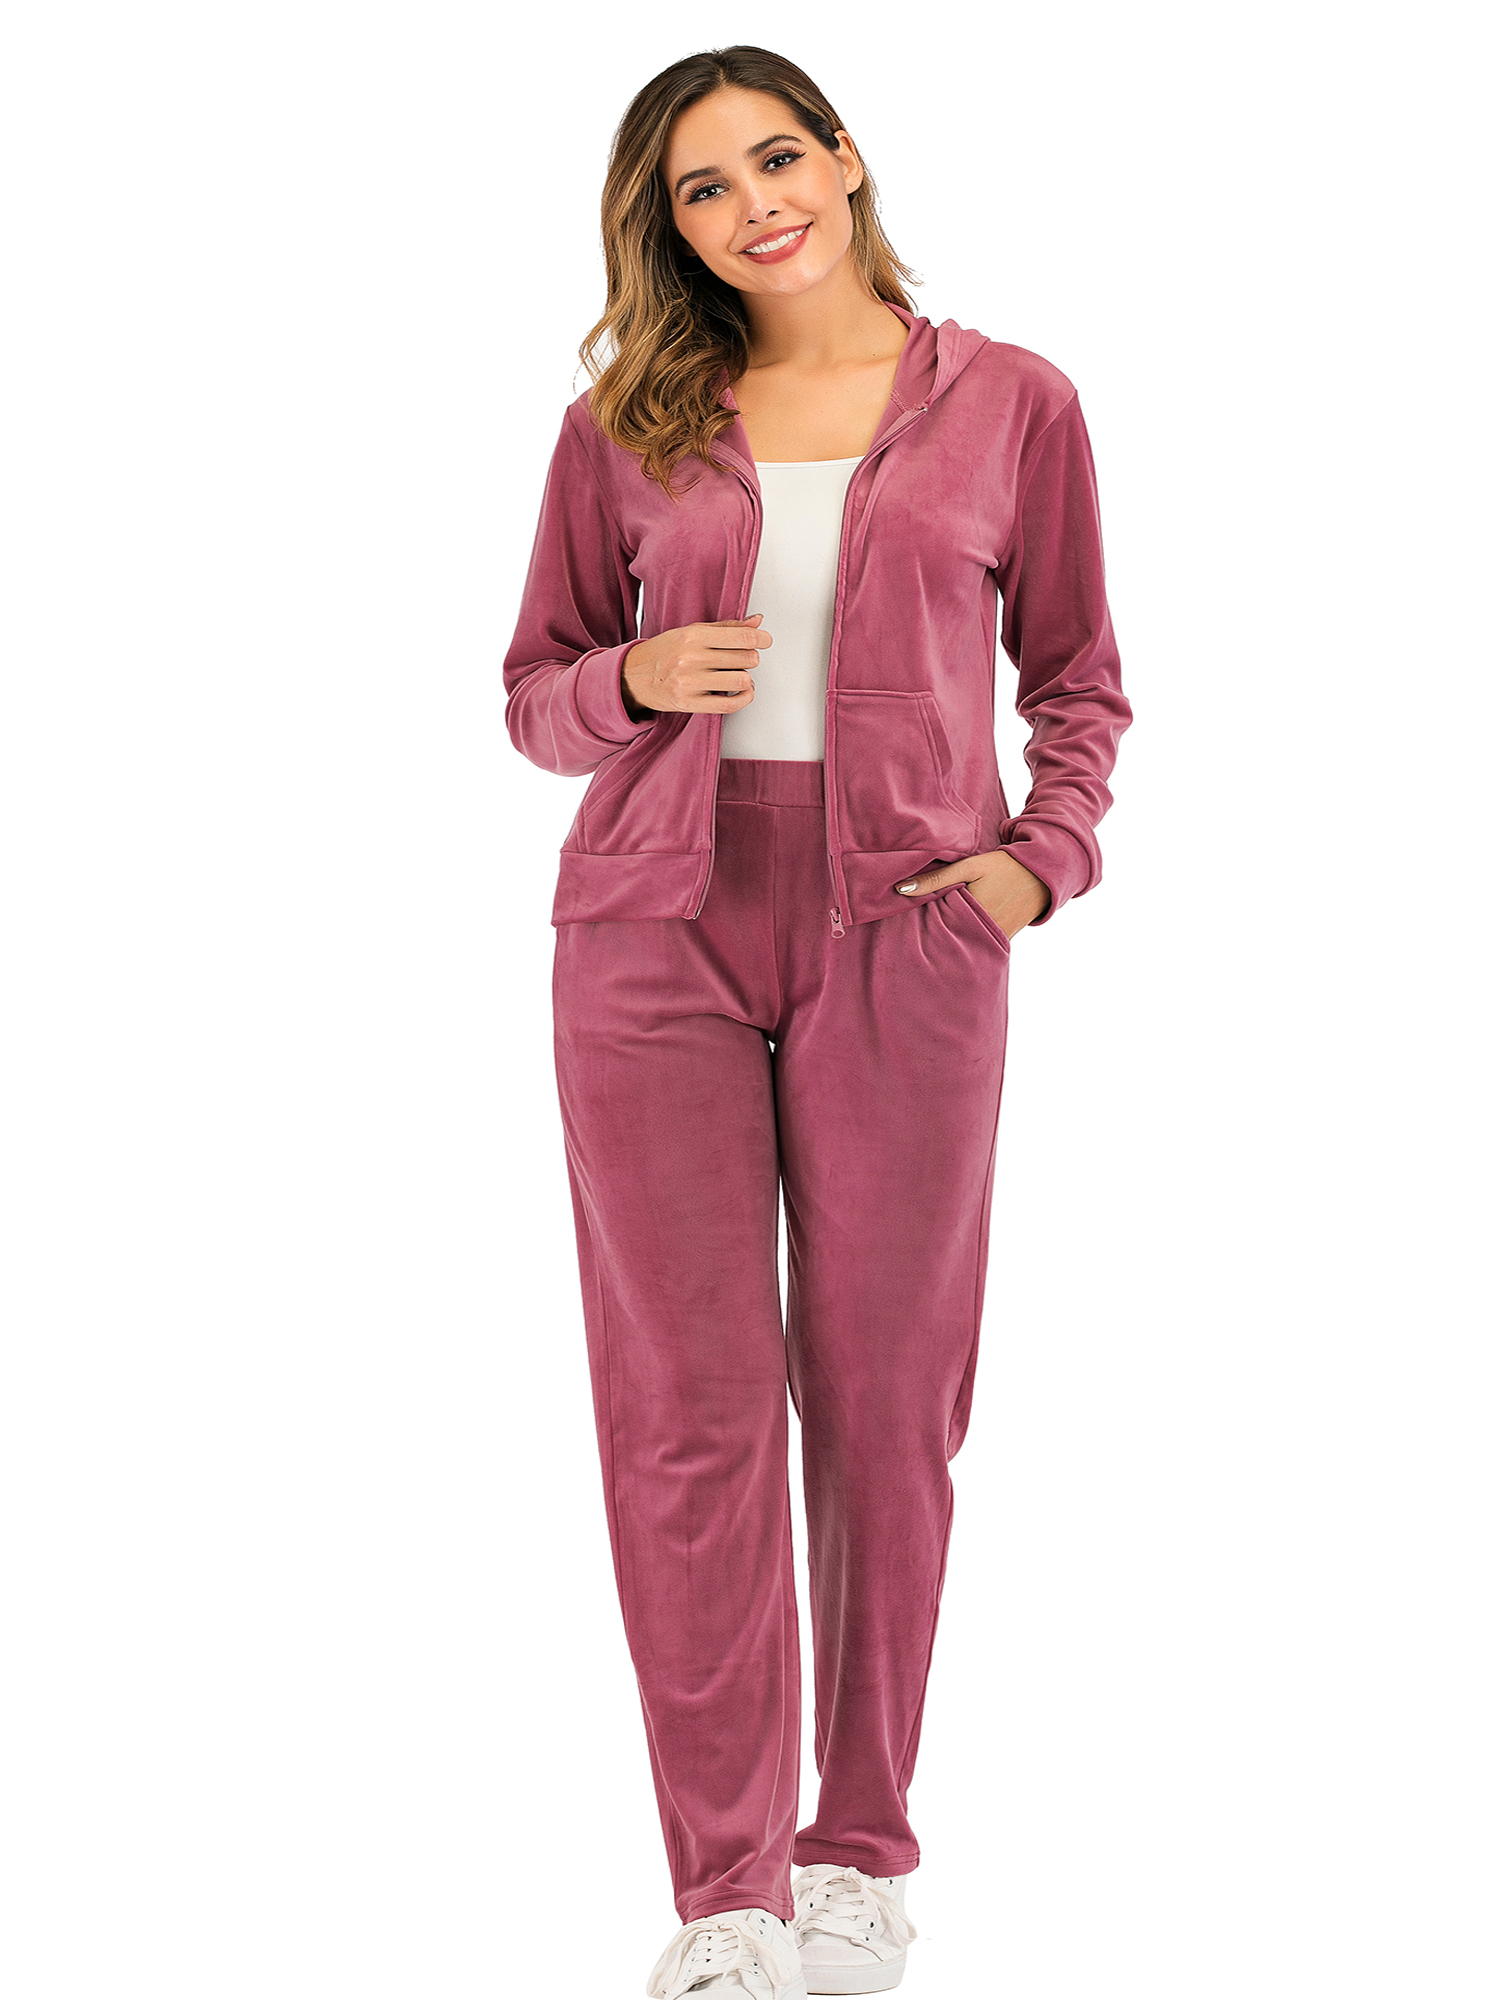 Kstare Womens Sweatsuit Set Jogging Zipped Fashion Sport Suit Hoodie and Pants Suits Pullover Tracksuits Outfits